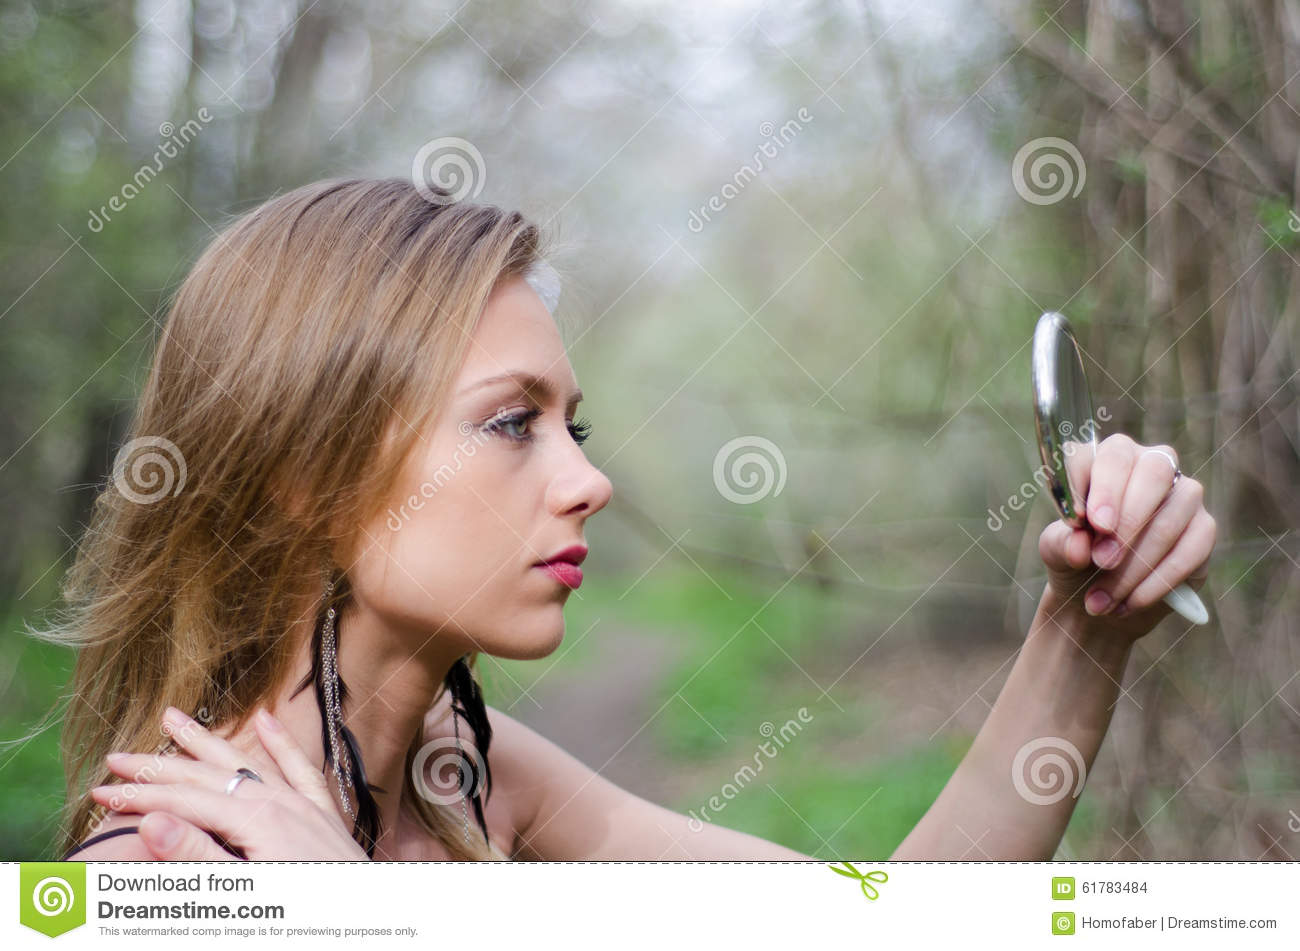 Naturally Beautiful Young Blond Woman In Nature Holding A Mirror